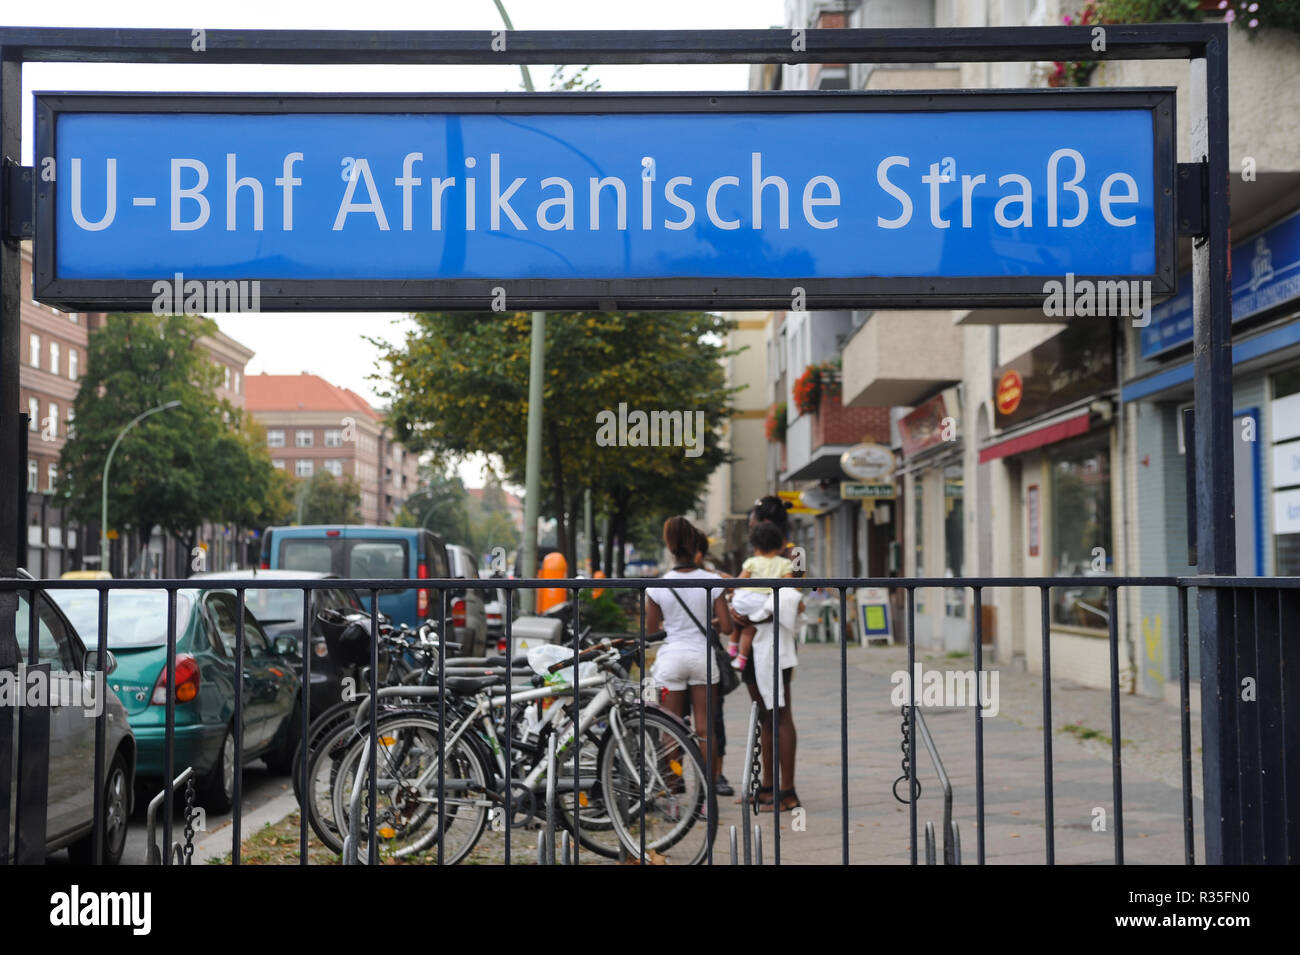 03.10.2011, Berlin, Germany, Europe - Entrance to the underground metro station Afrikanische Strasse in Berlin-Wedding. - Stock Image